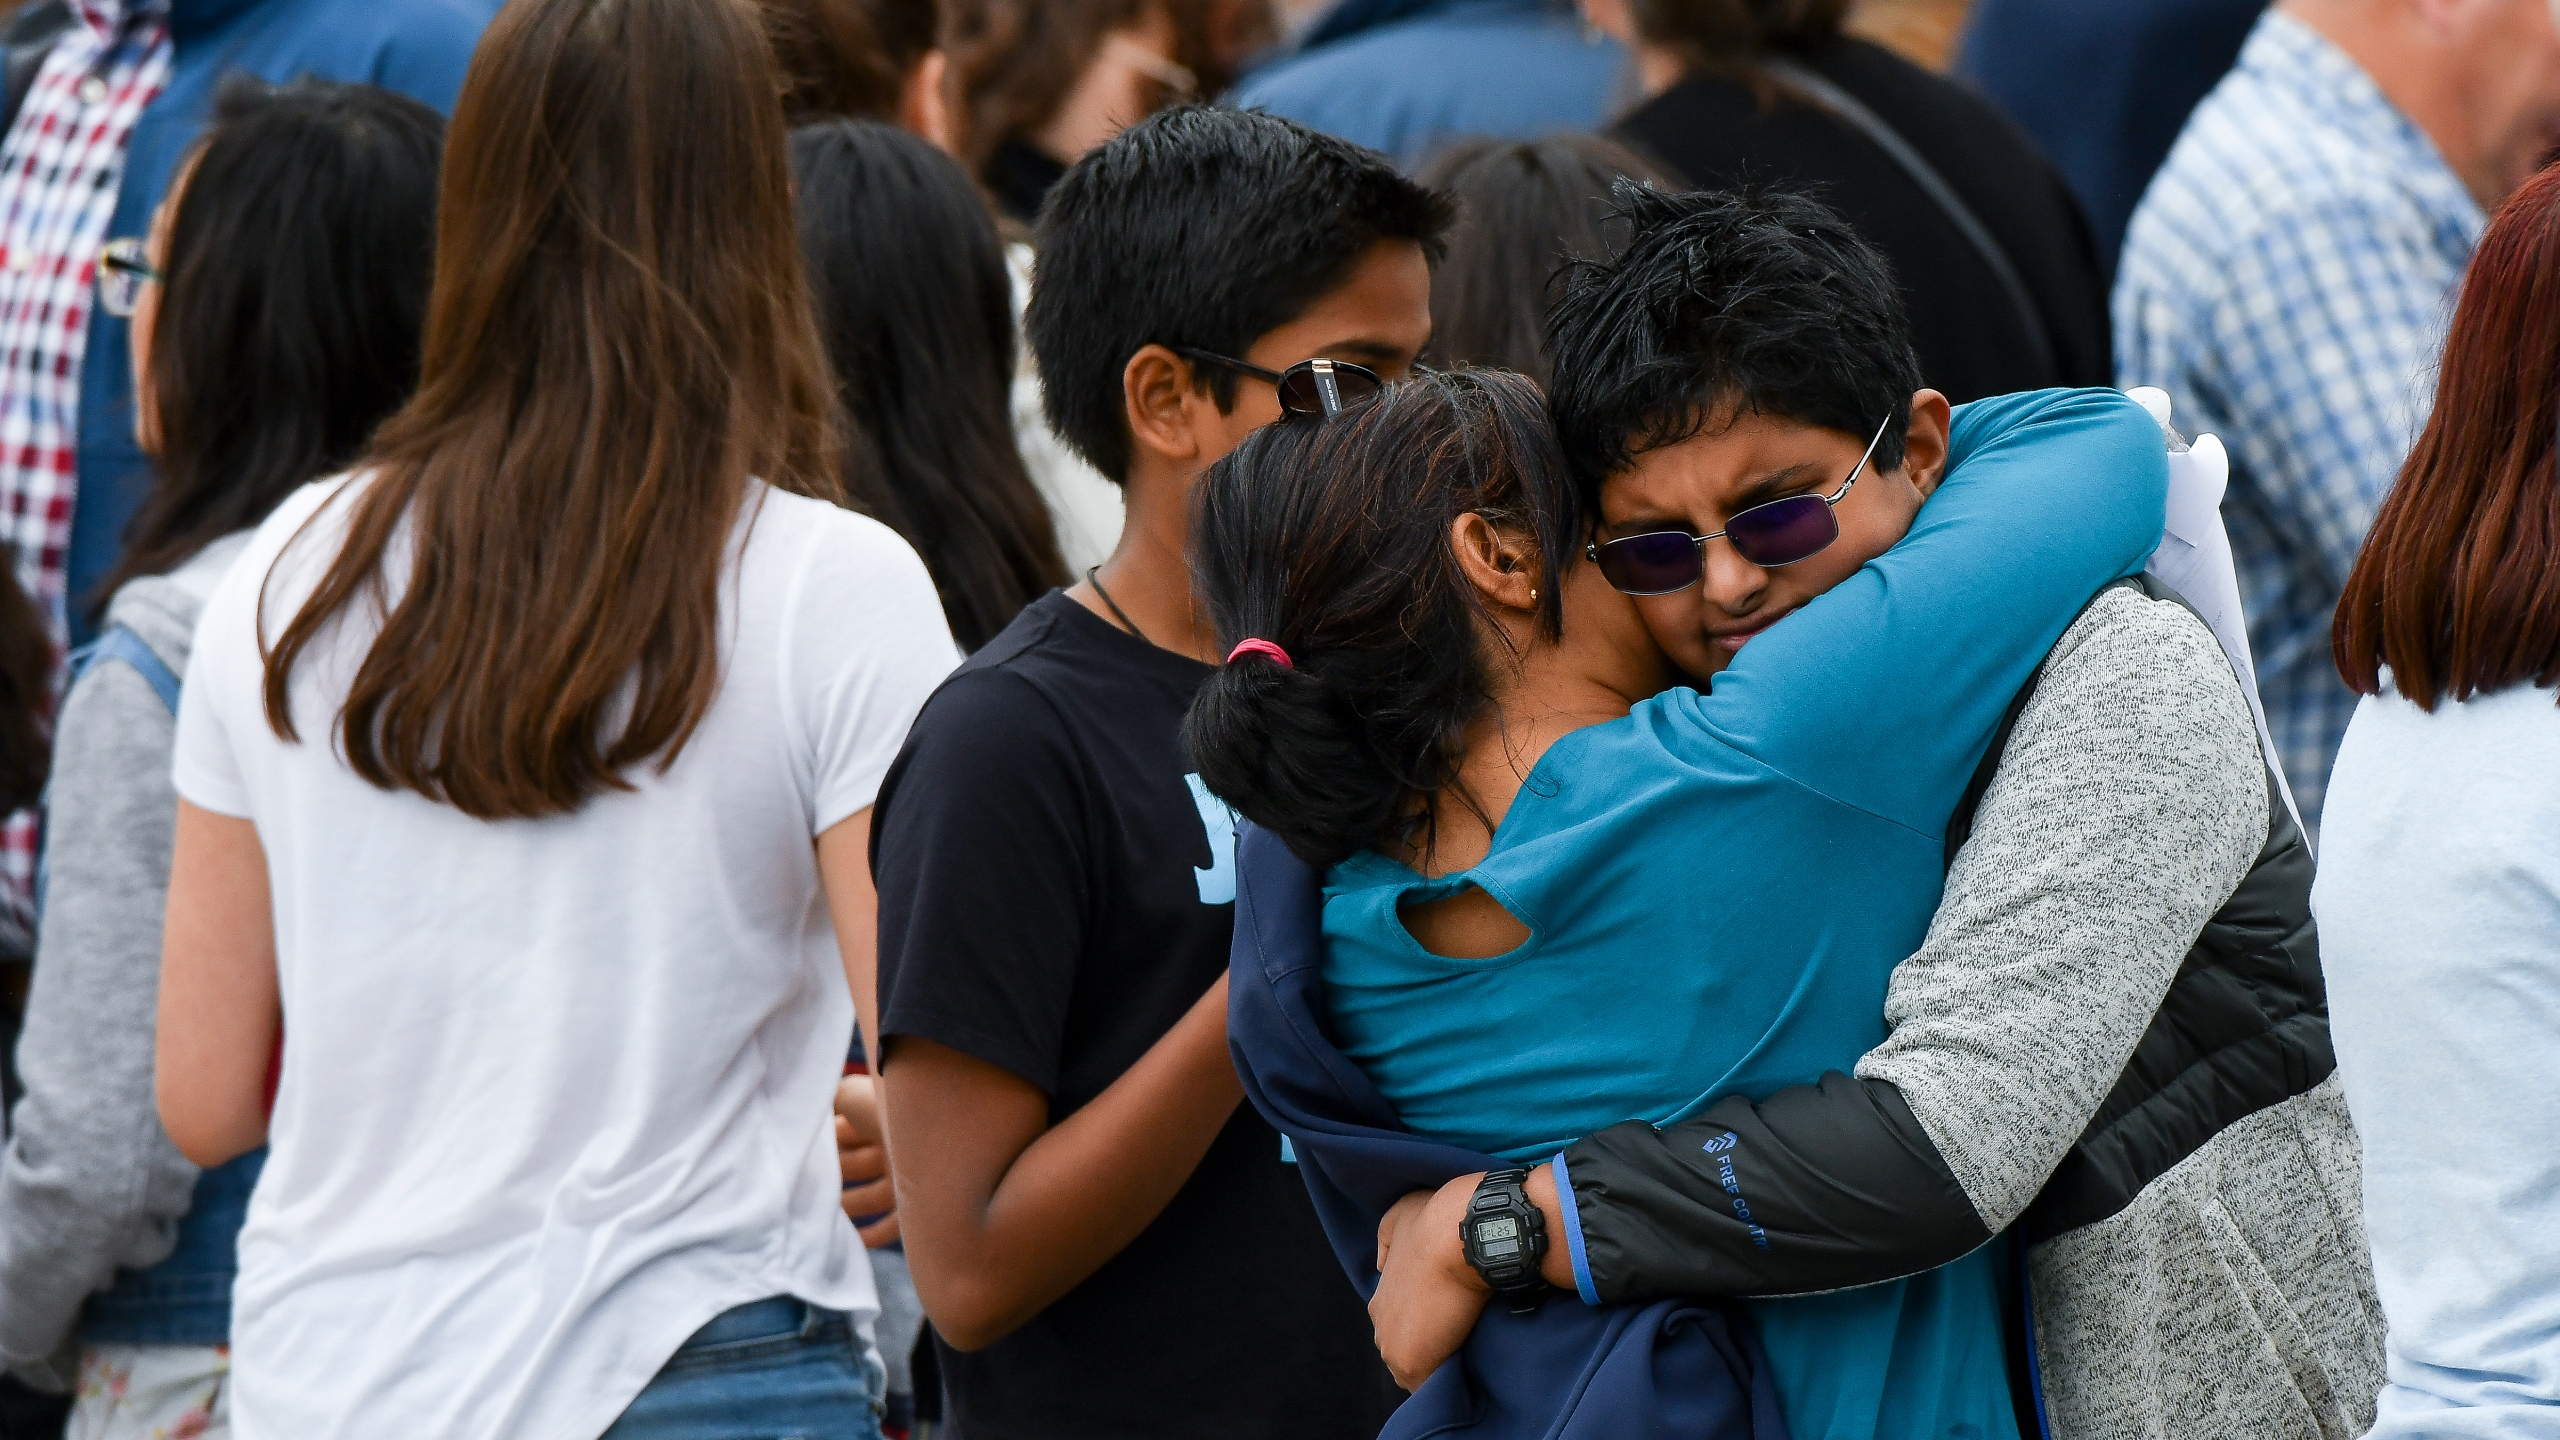 Students are reunited with their parents after being evacuated after at least seven students were injured during a shooting at STEM School Highlands Ranch in Highlands Ranch, Colorado, on May 7, 2019. (Credit: Michael Ciaglo / Getty Images)